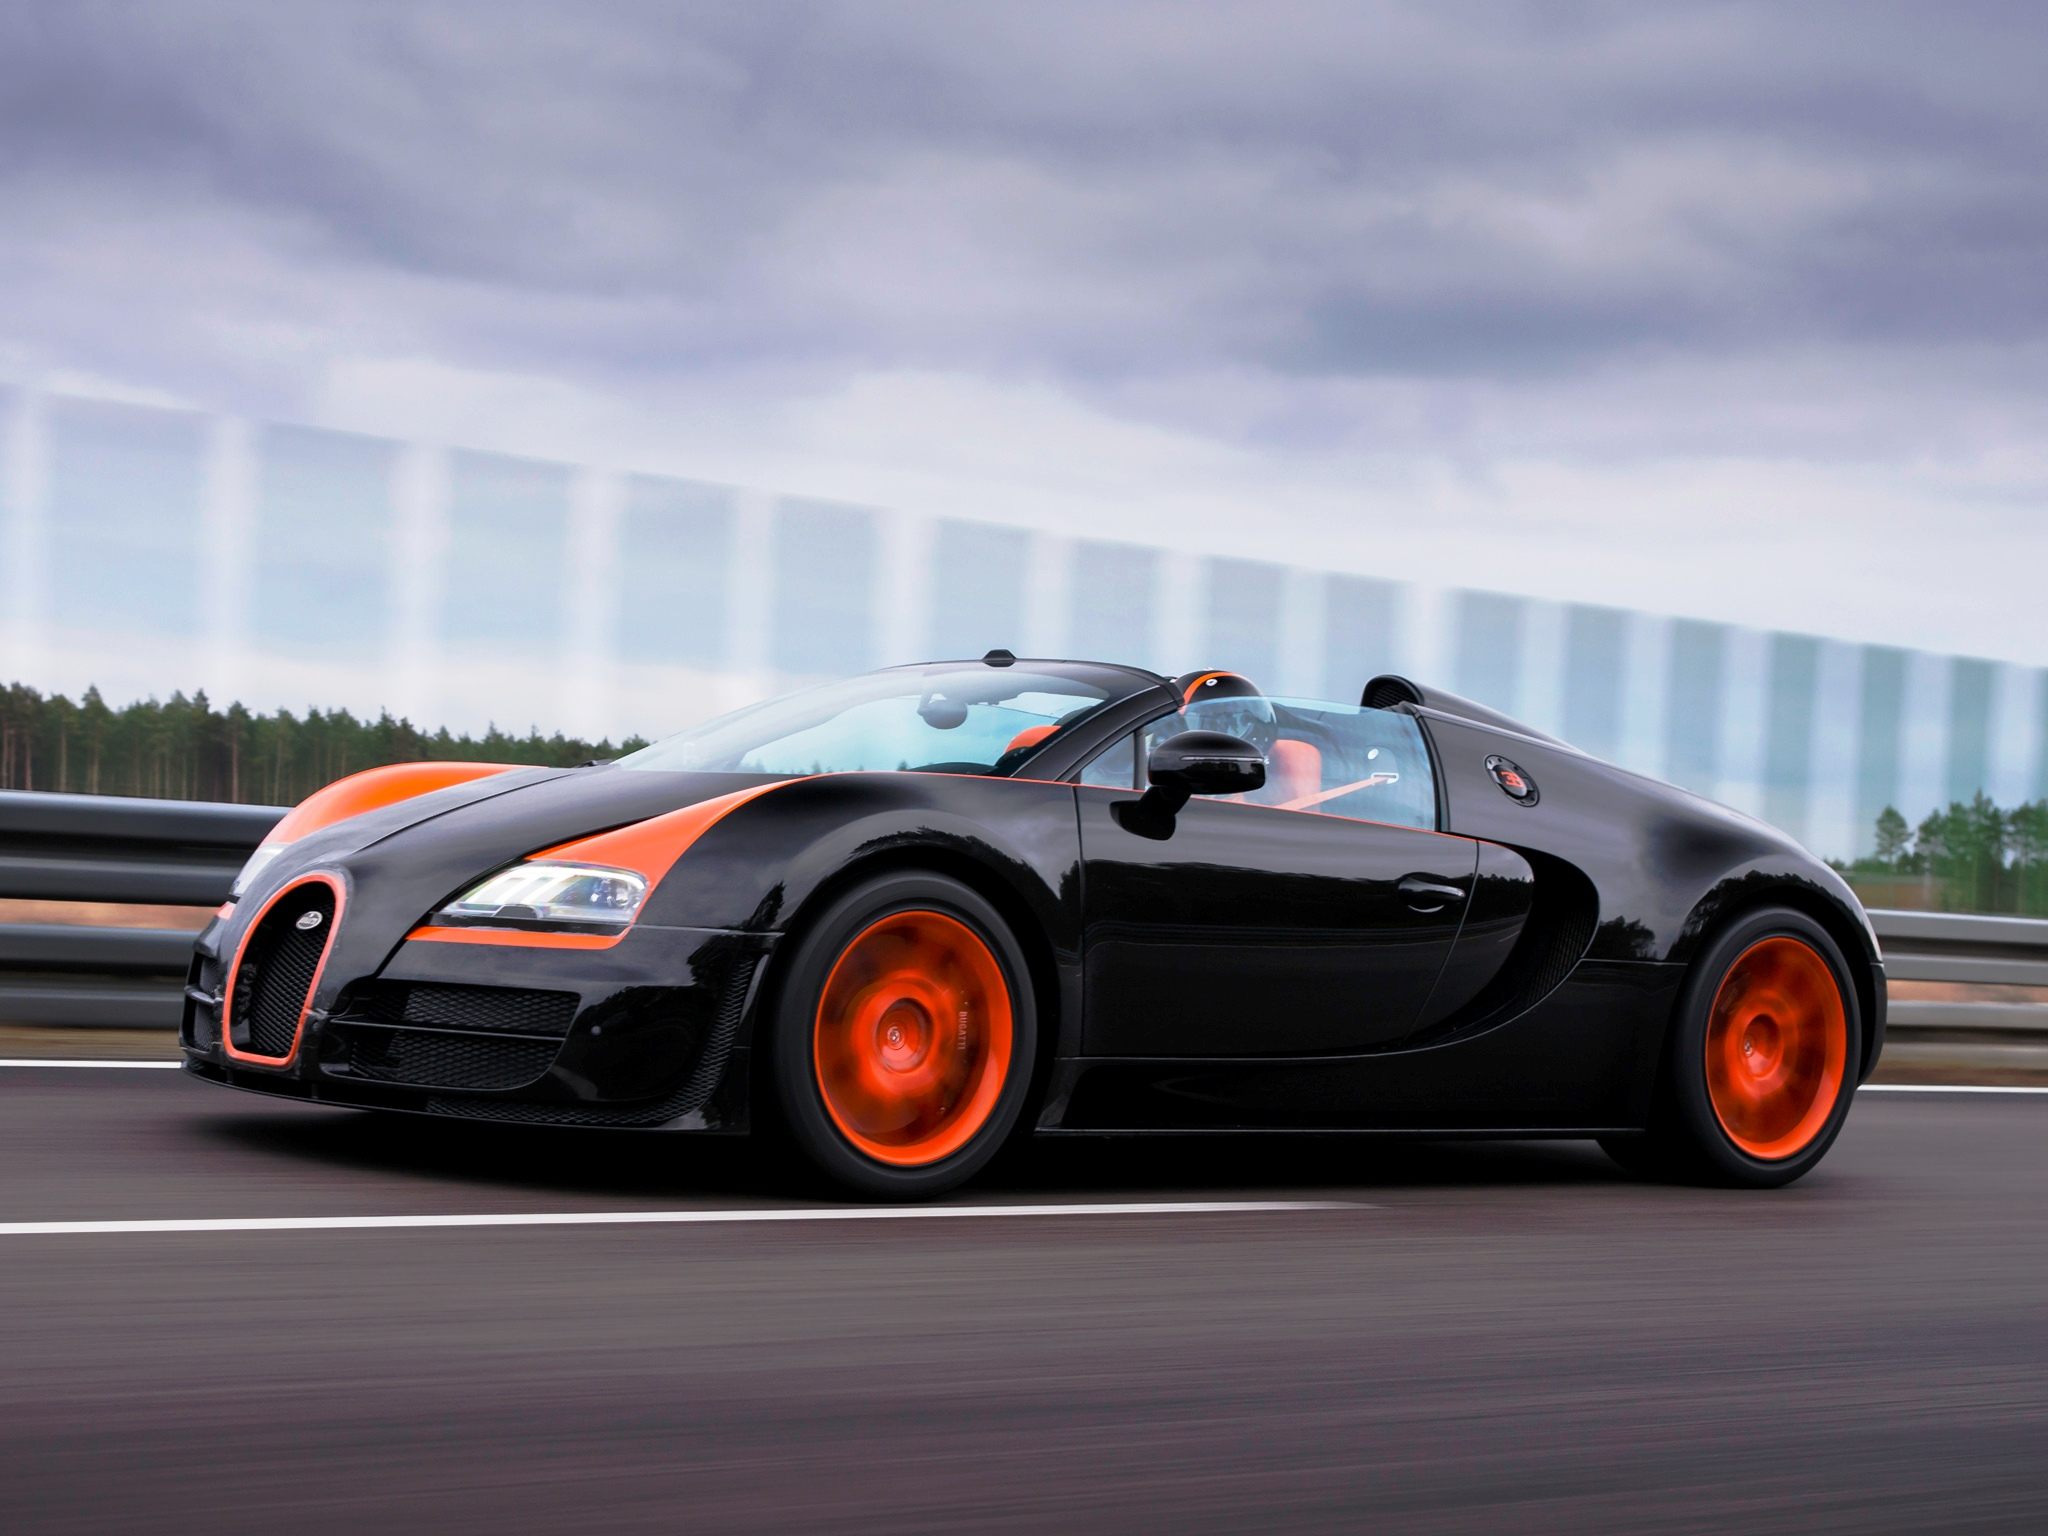 beyonce buys jay z bugatti veyron grand sport to pictures. Black Bedroom Furniture Sets. Home Design Ideas